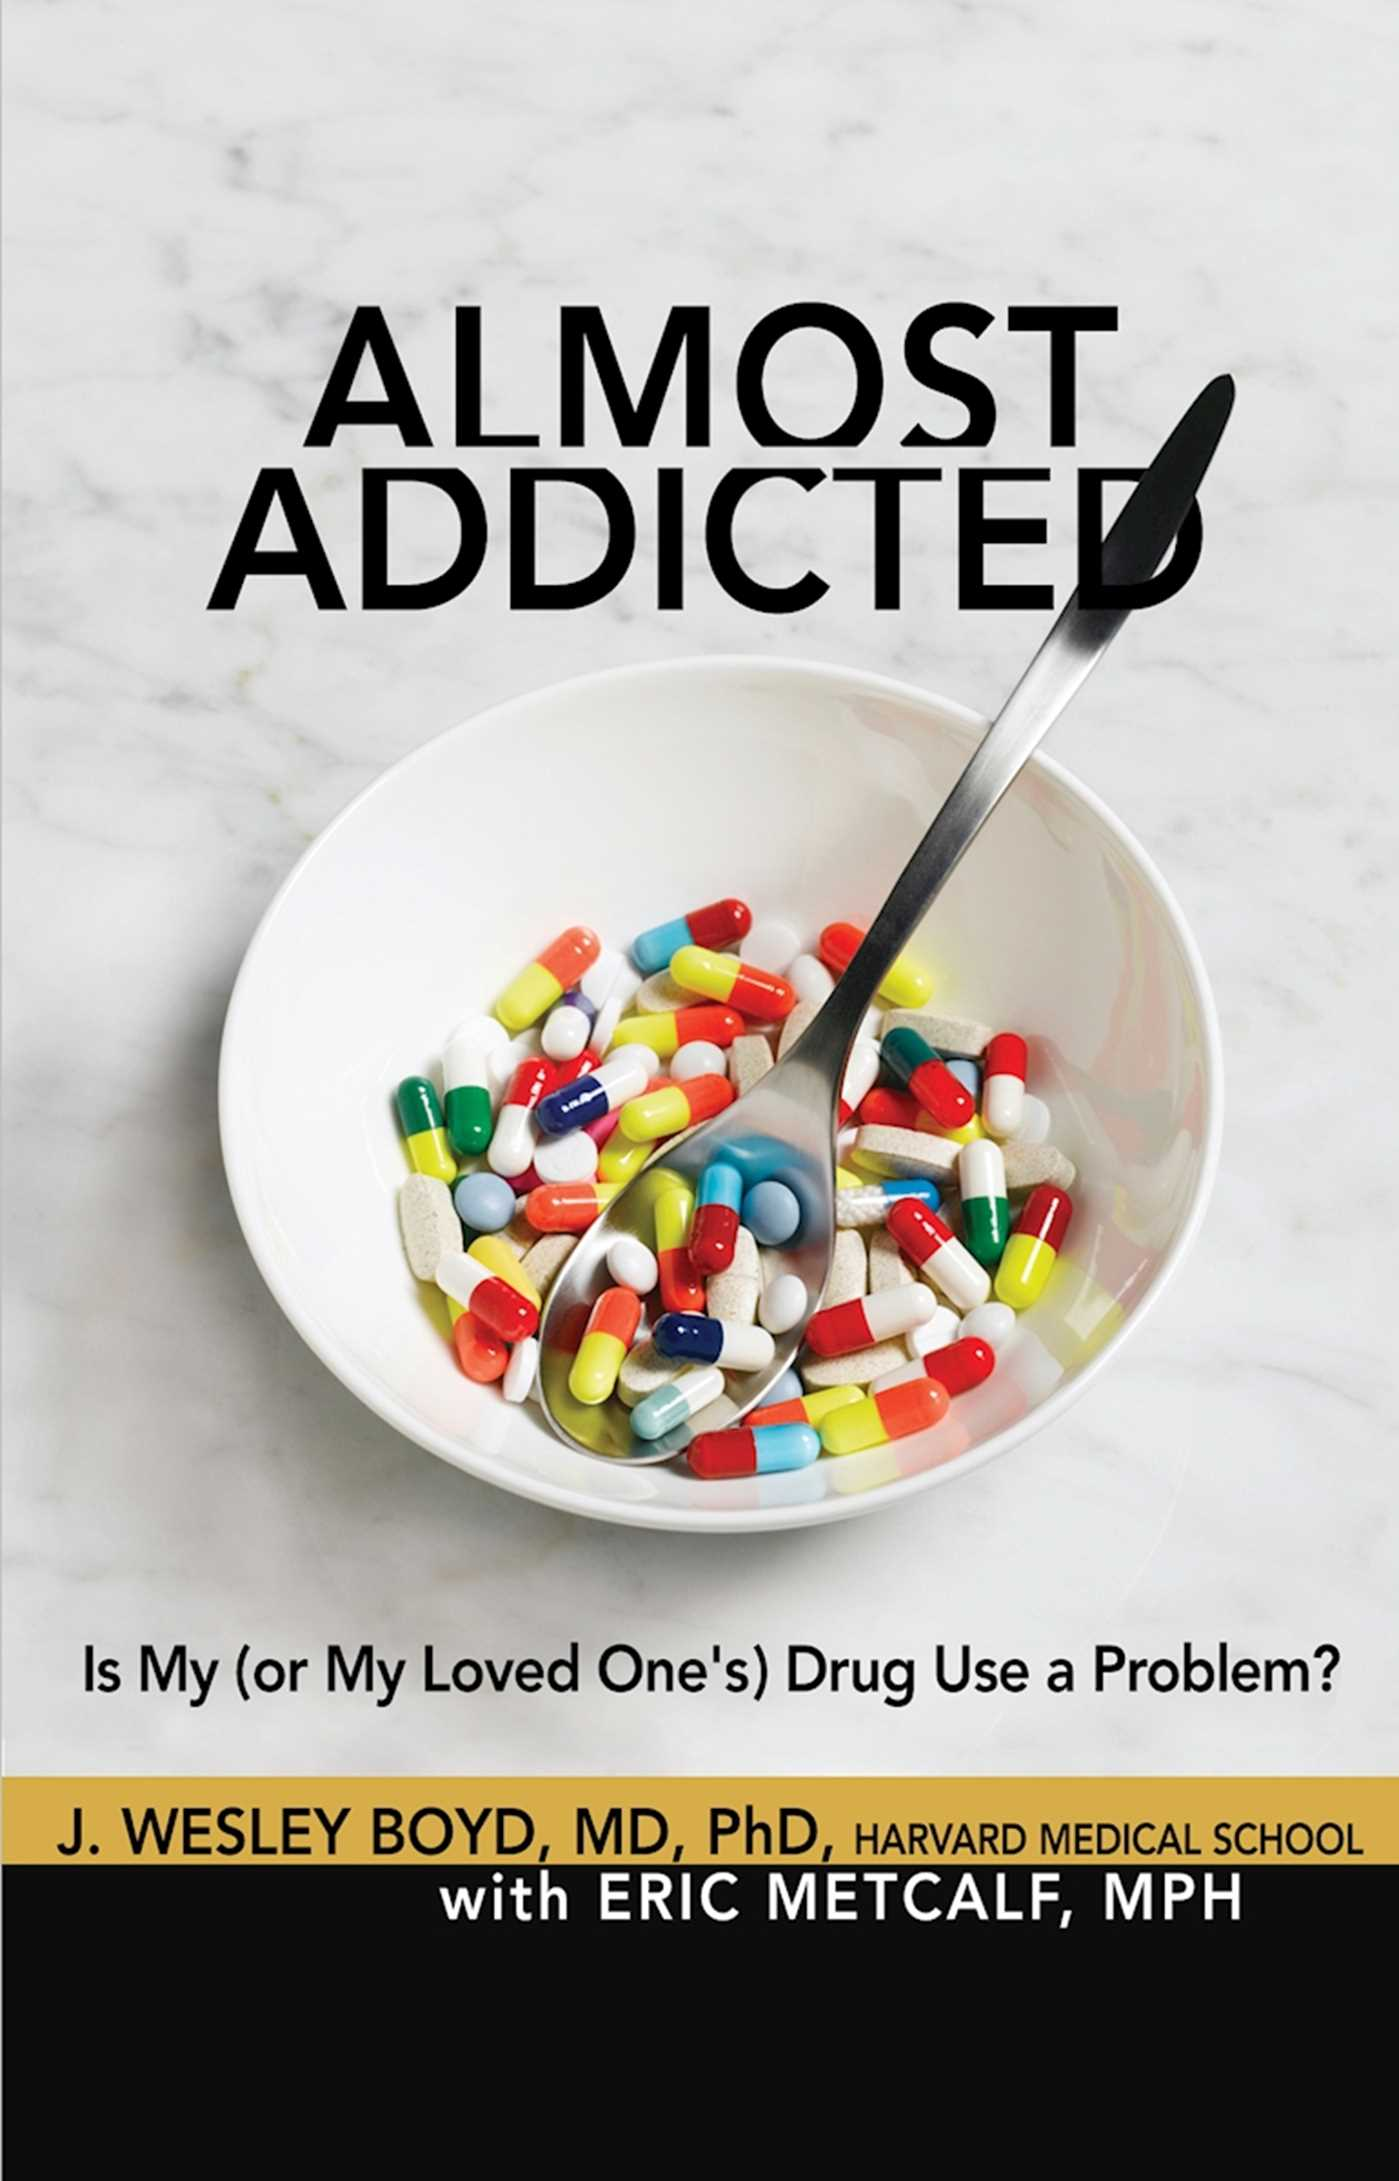 Almost Addicted Is My (or My Loved One's) Drug Use a Problem?